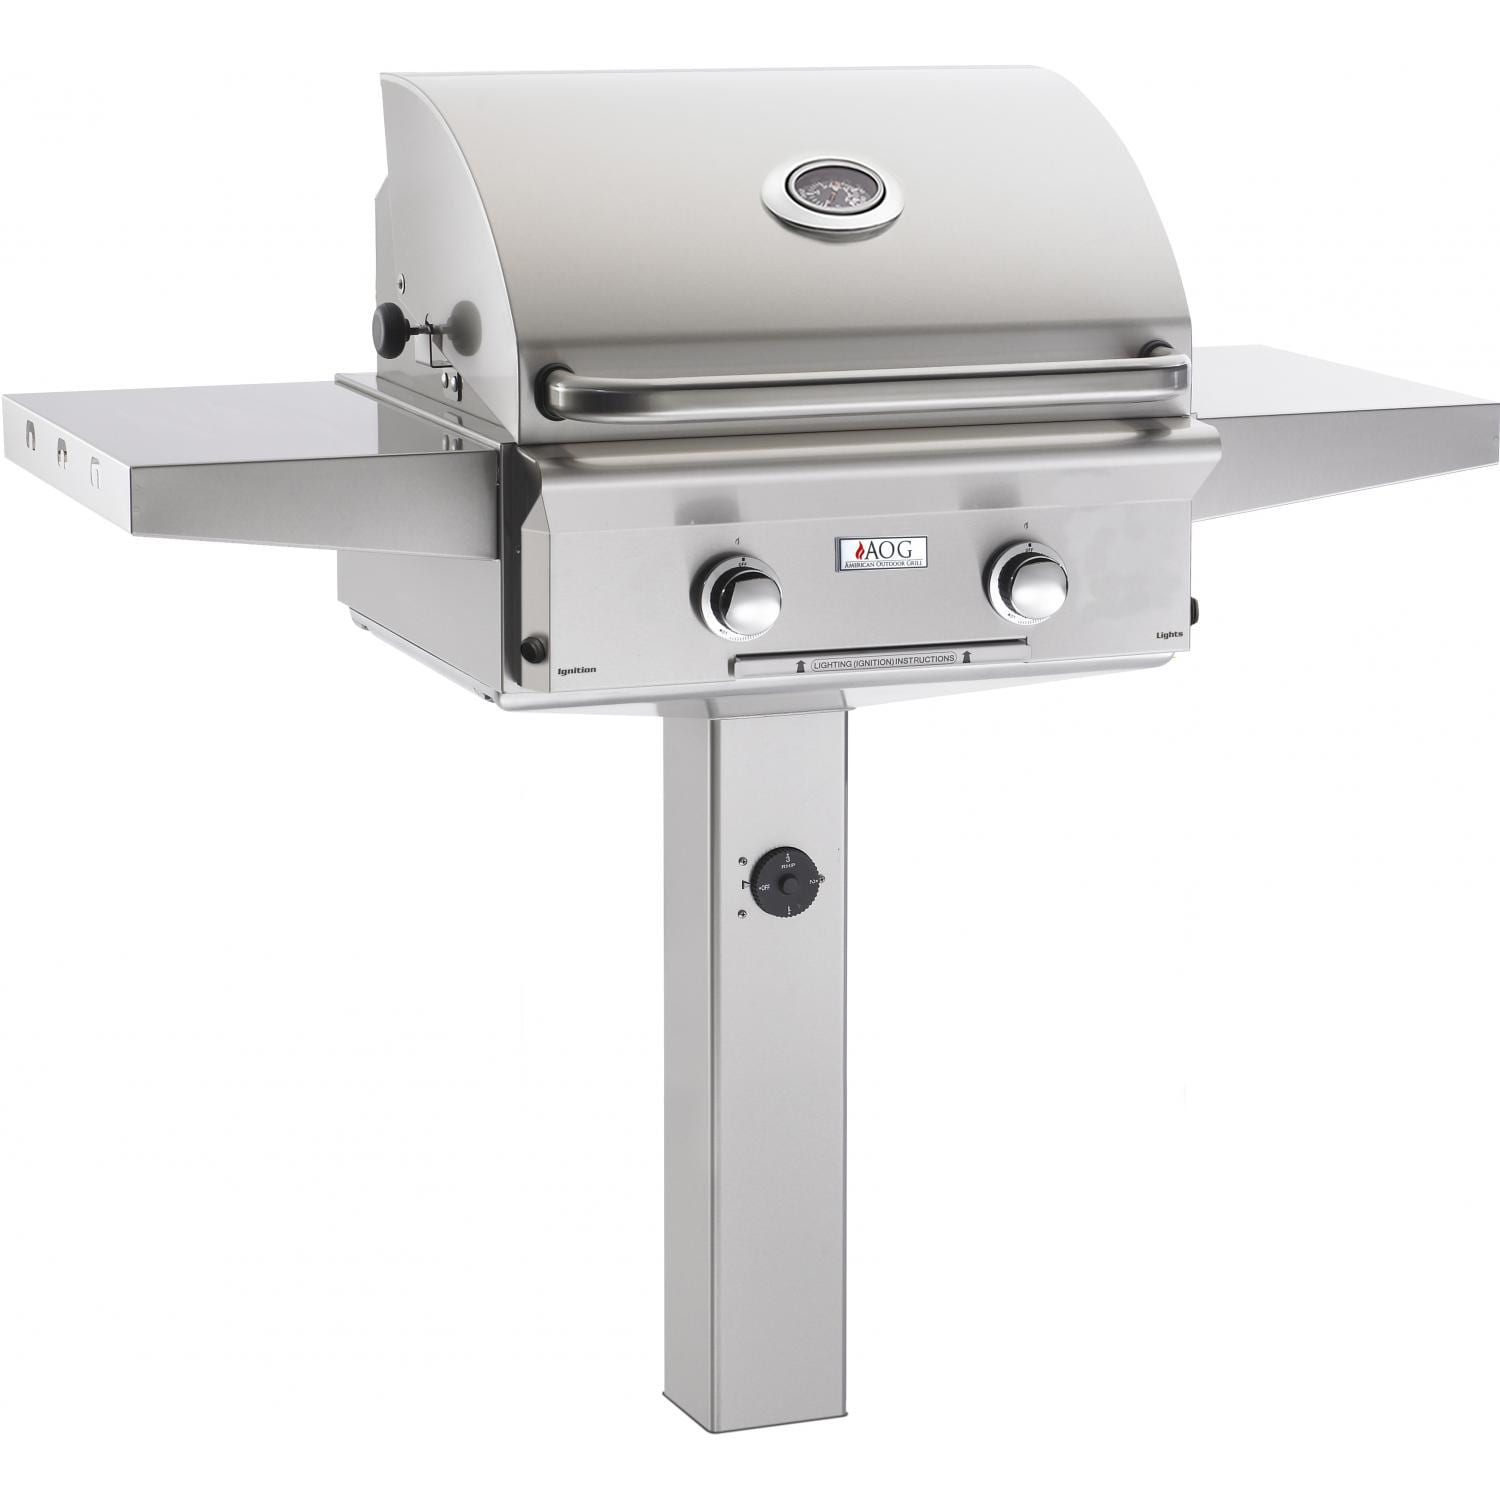 American Outdoor Grill L-Series 24-Inch Freestanding Propane Gas Grill